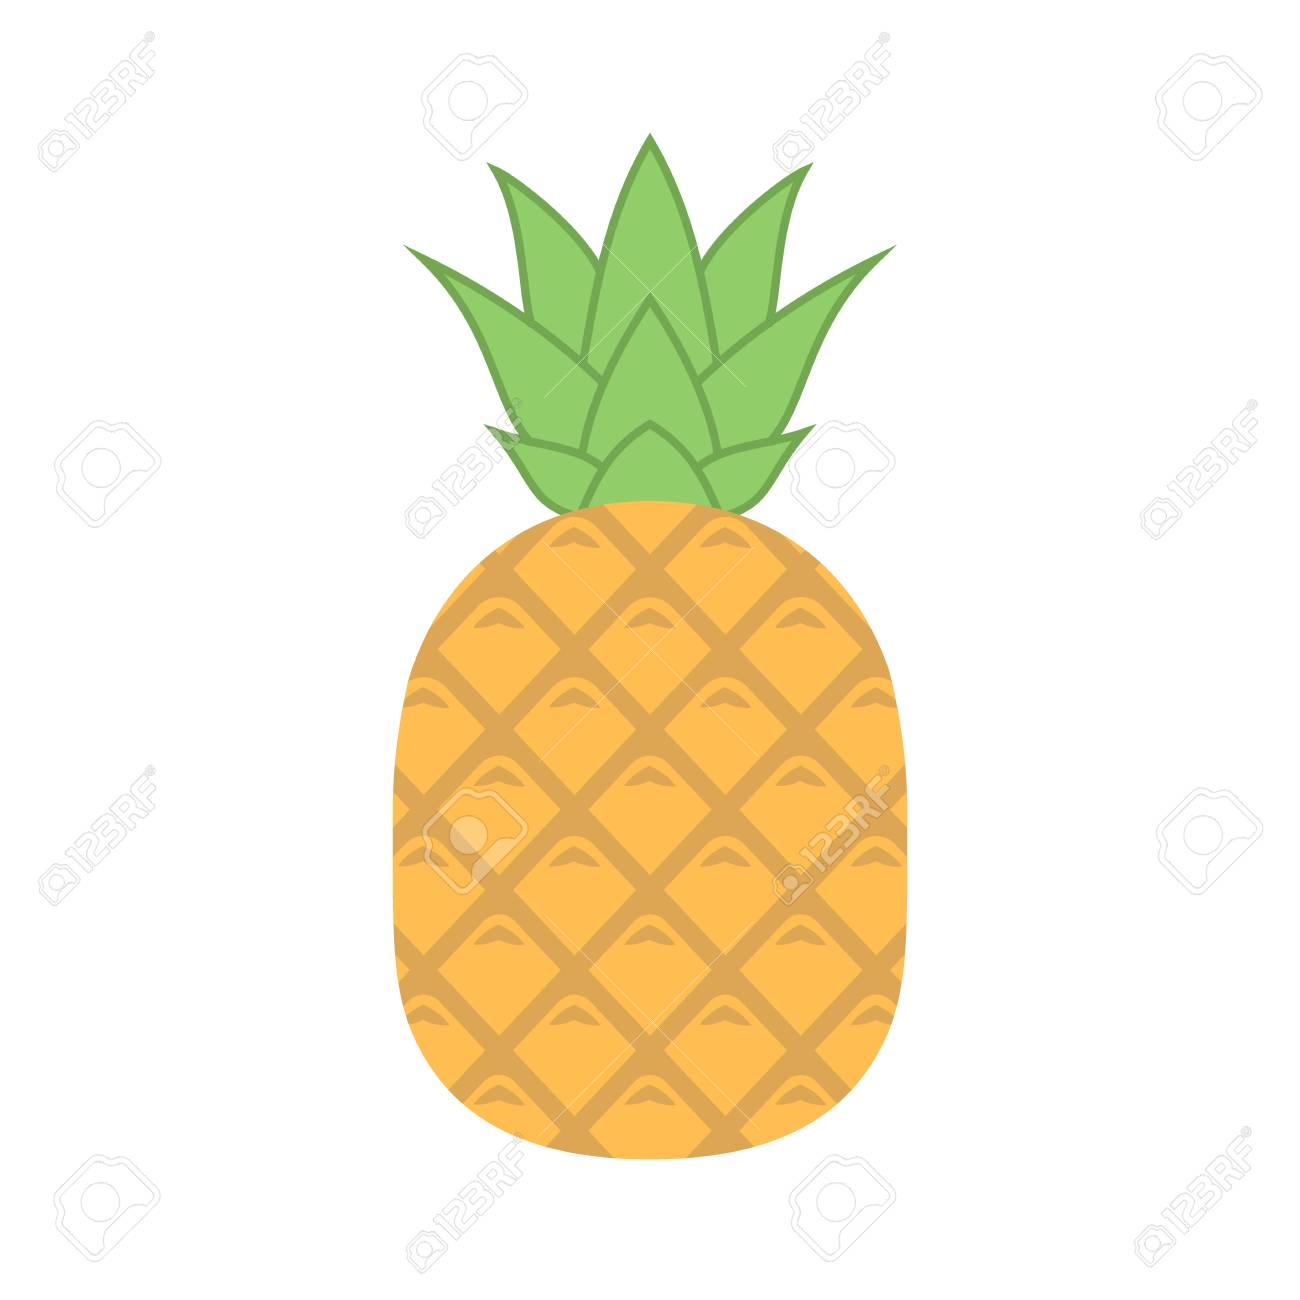 Pineapple with leaves vector icon. Pineapple icon clipart. Pineapple...